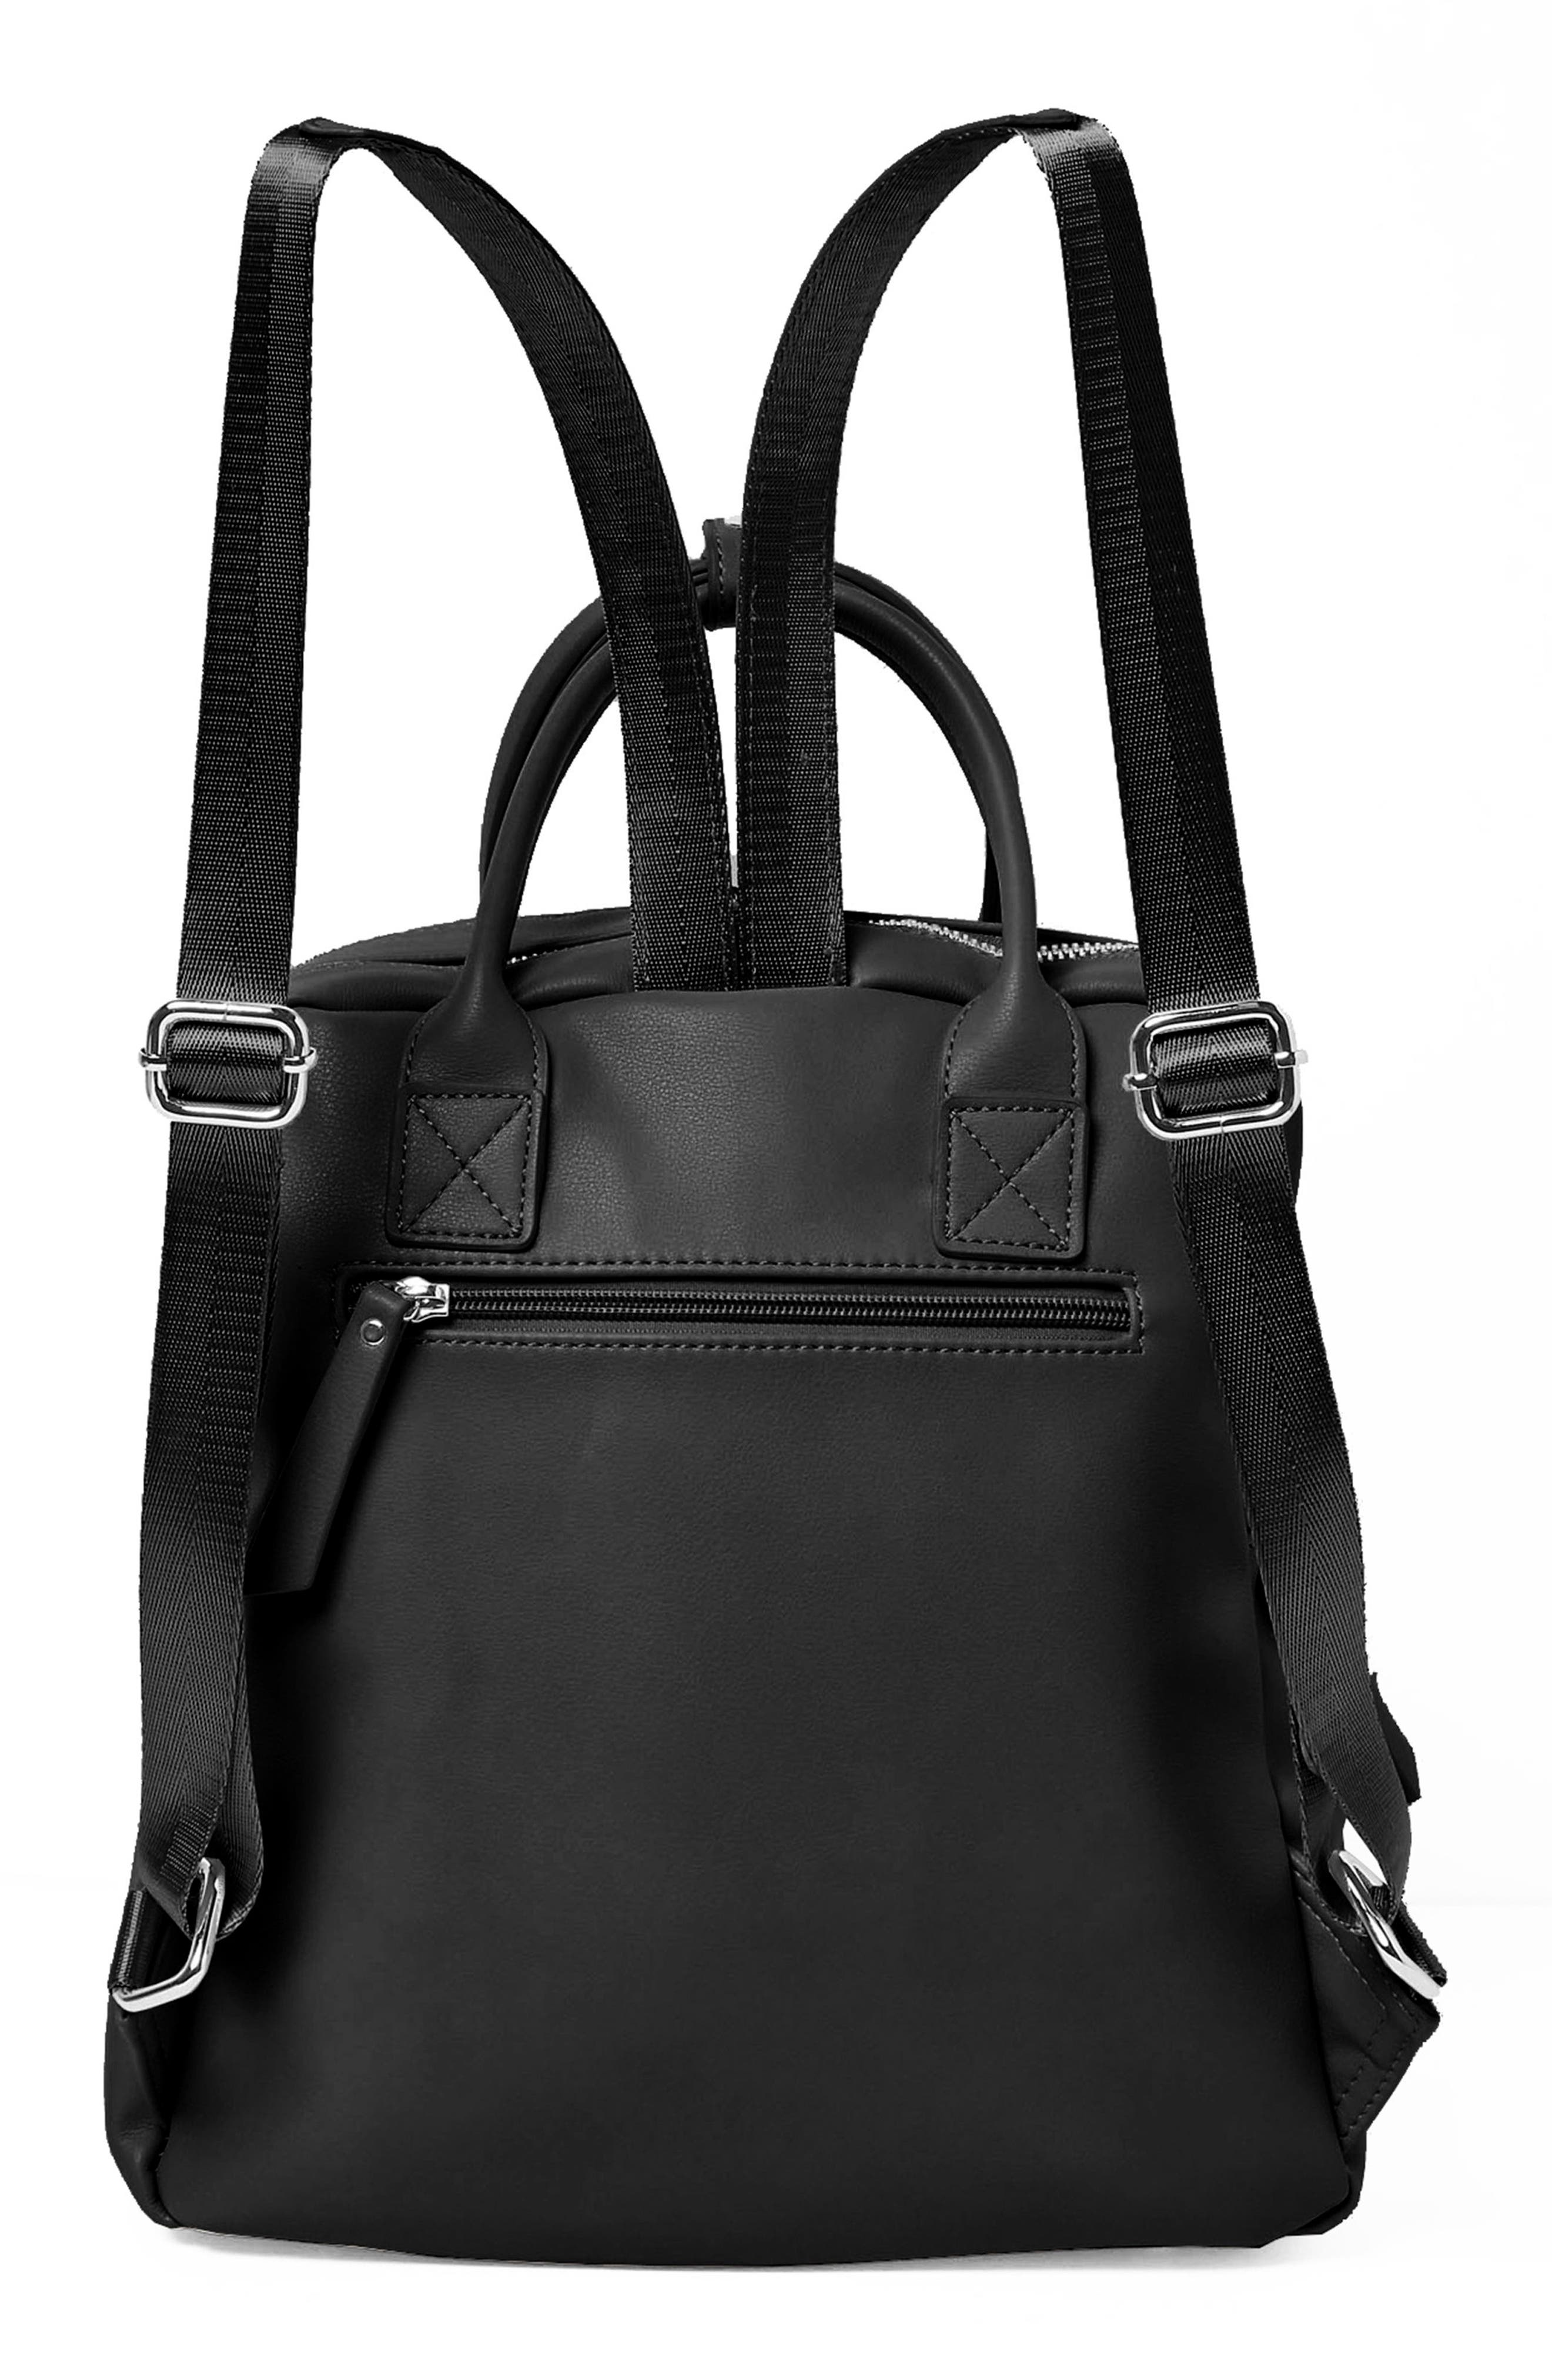 Over Exposure Vegan Leather Backpack,                             Alternate thumbnail 2, color,                             Black